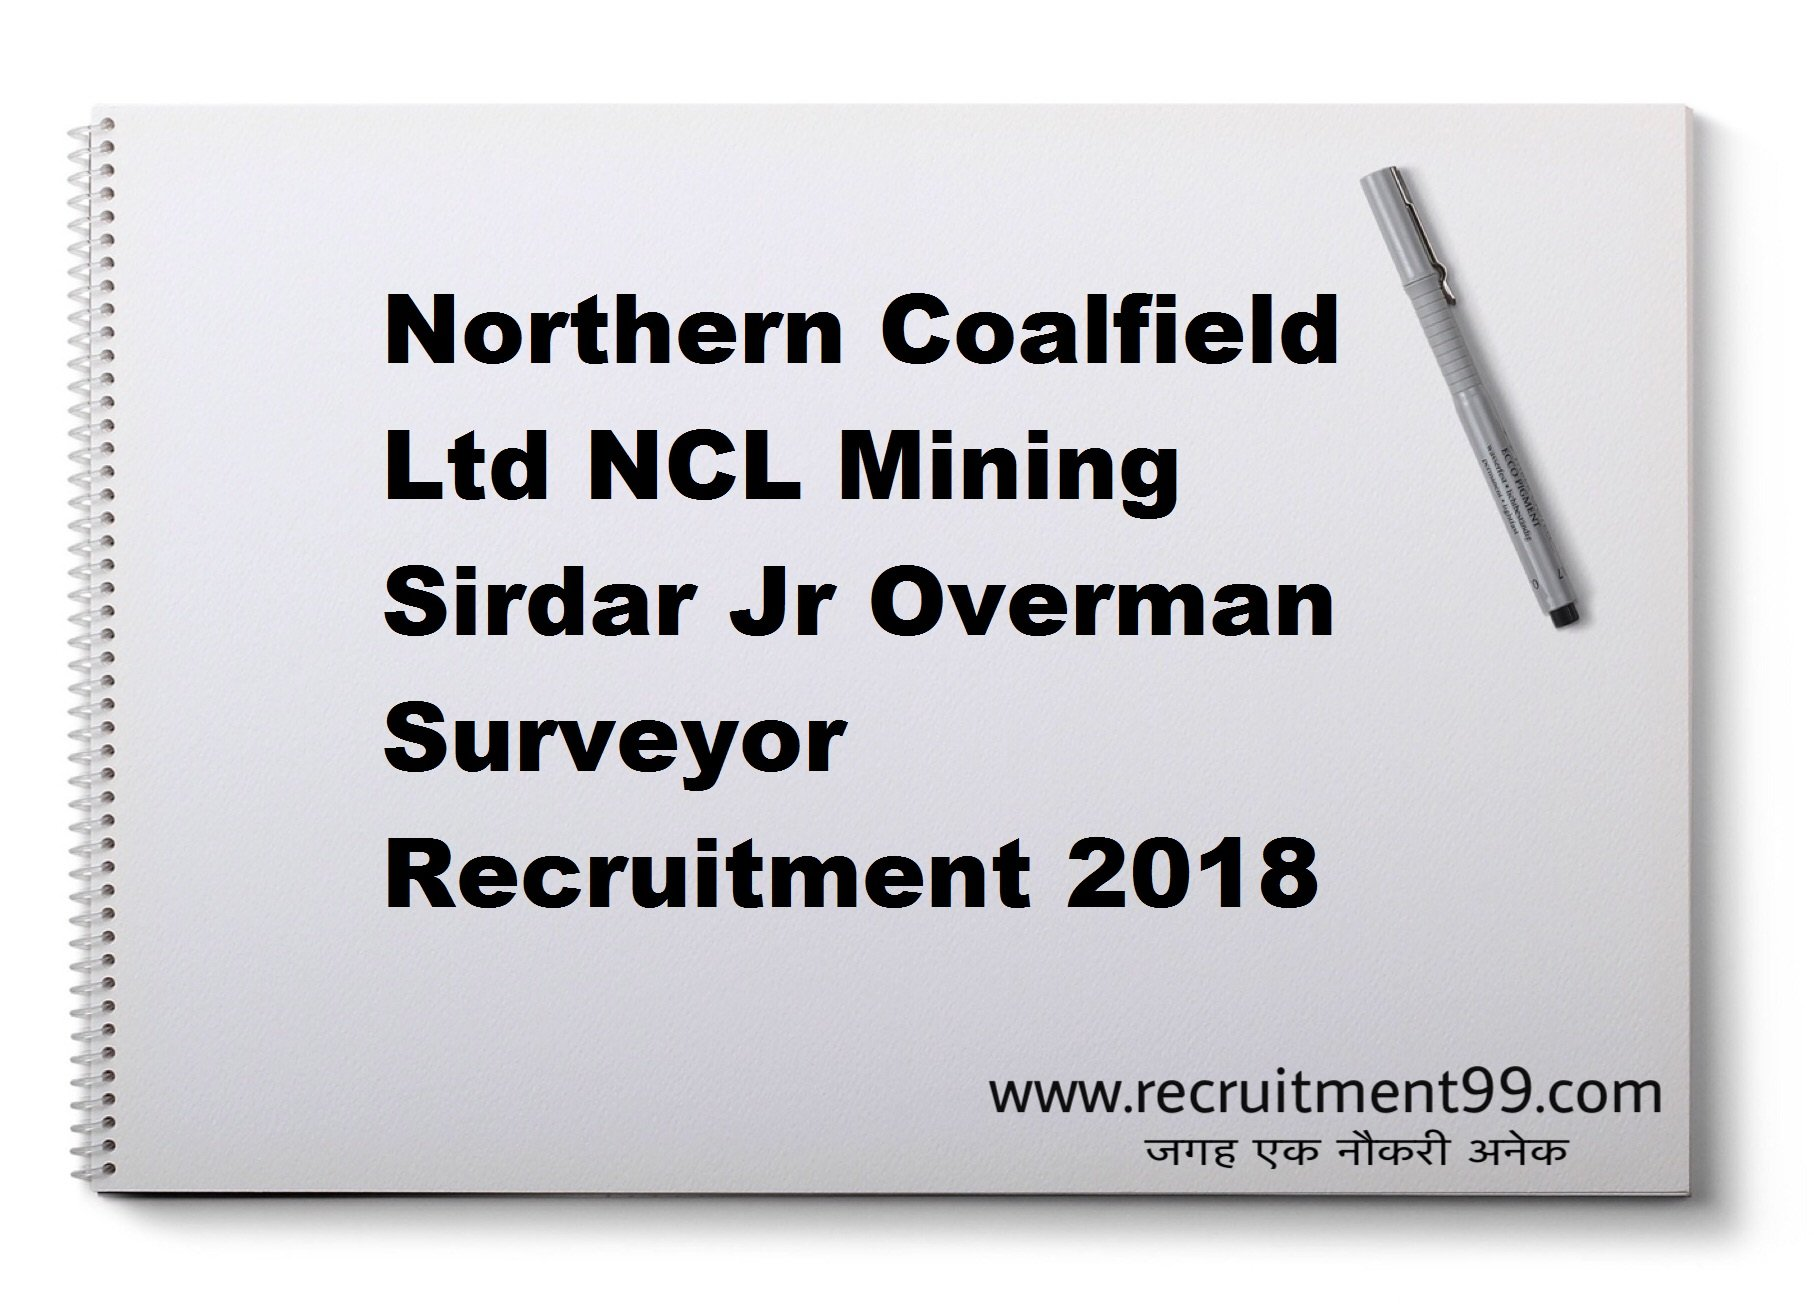 Northern Coalfield Ltd NCL Mining Sirdar Jr Overman Surveyor Recruitment Admit Card Result 2018